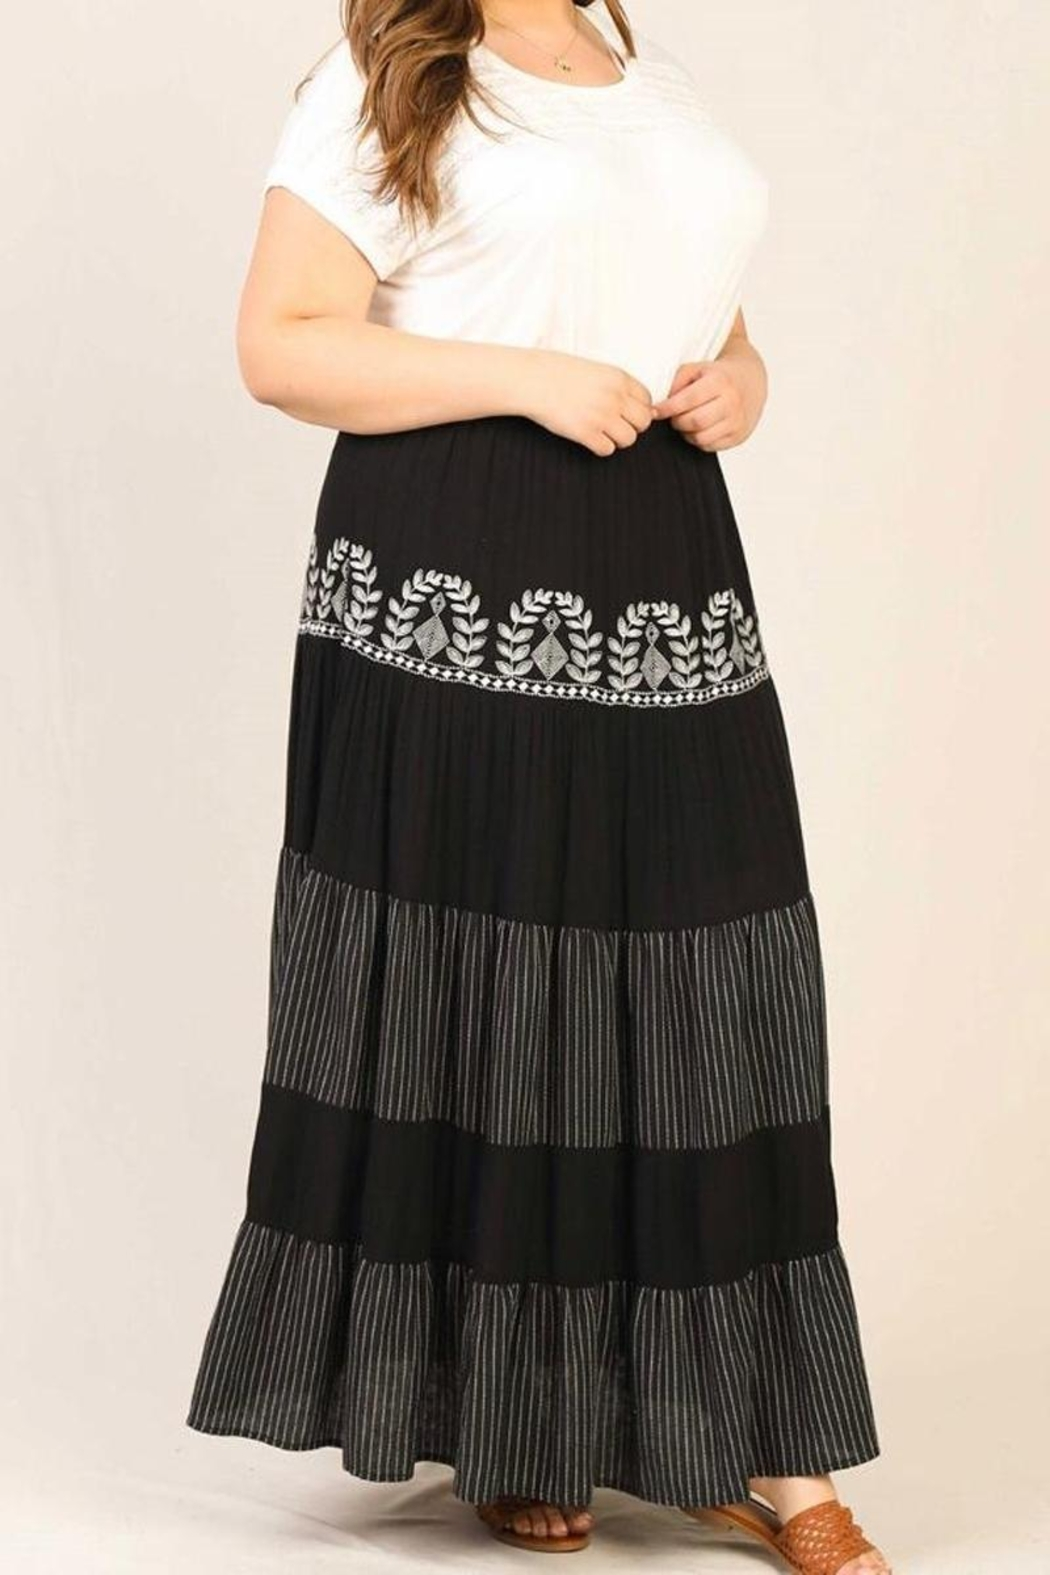 Karen Michelle Plus-Size Embroidered Maxi Skirt - Main Image